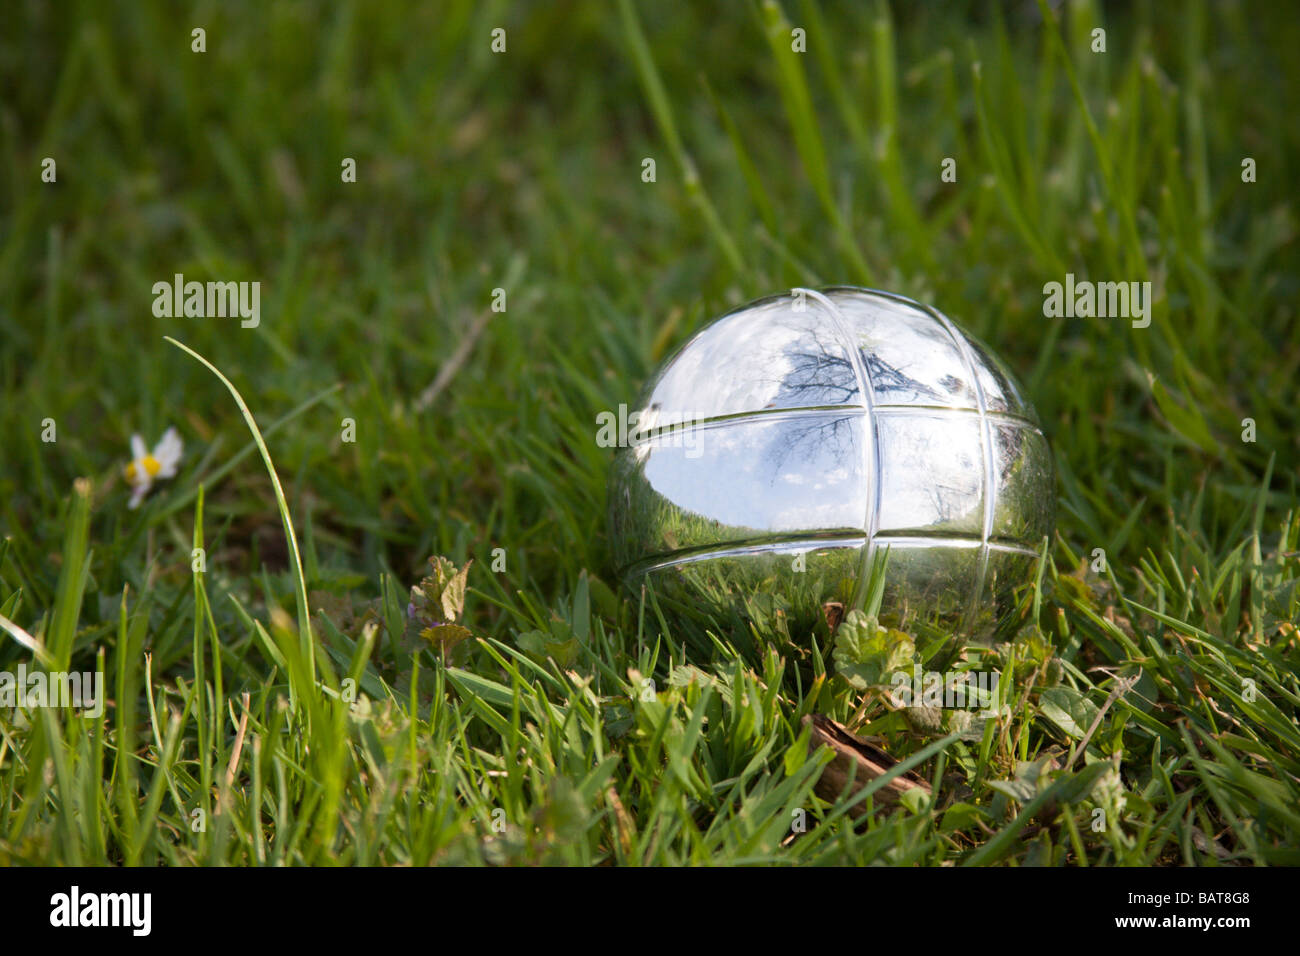 Close up of silver metal petanque bowls on grass. - Stock Image